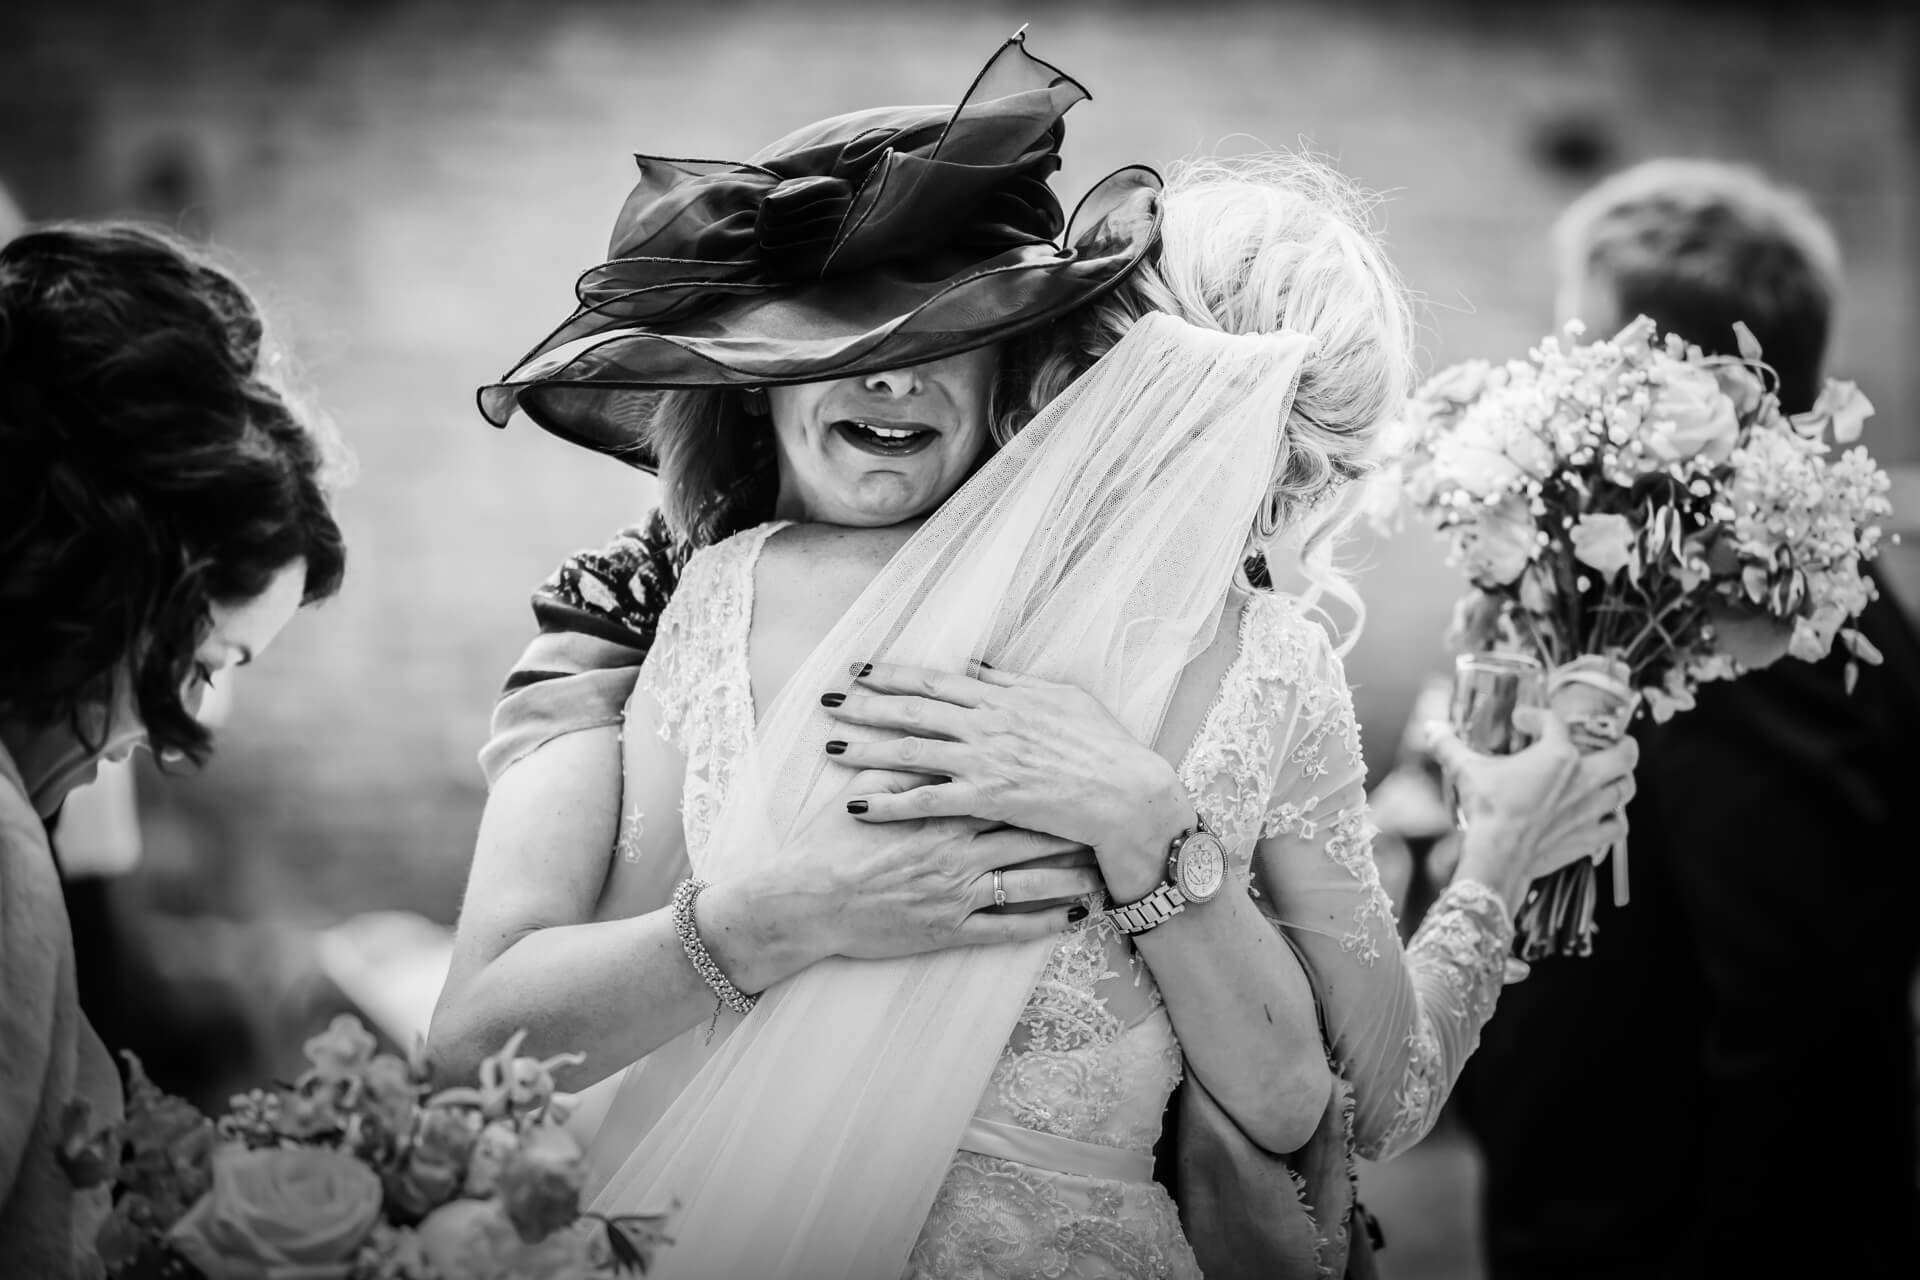 brides friend hugging the bride and smiling